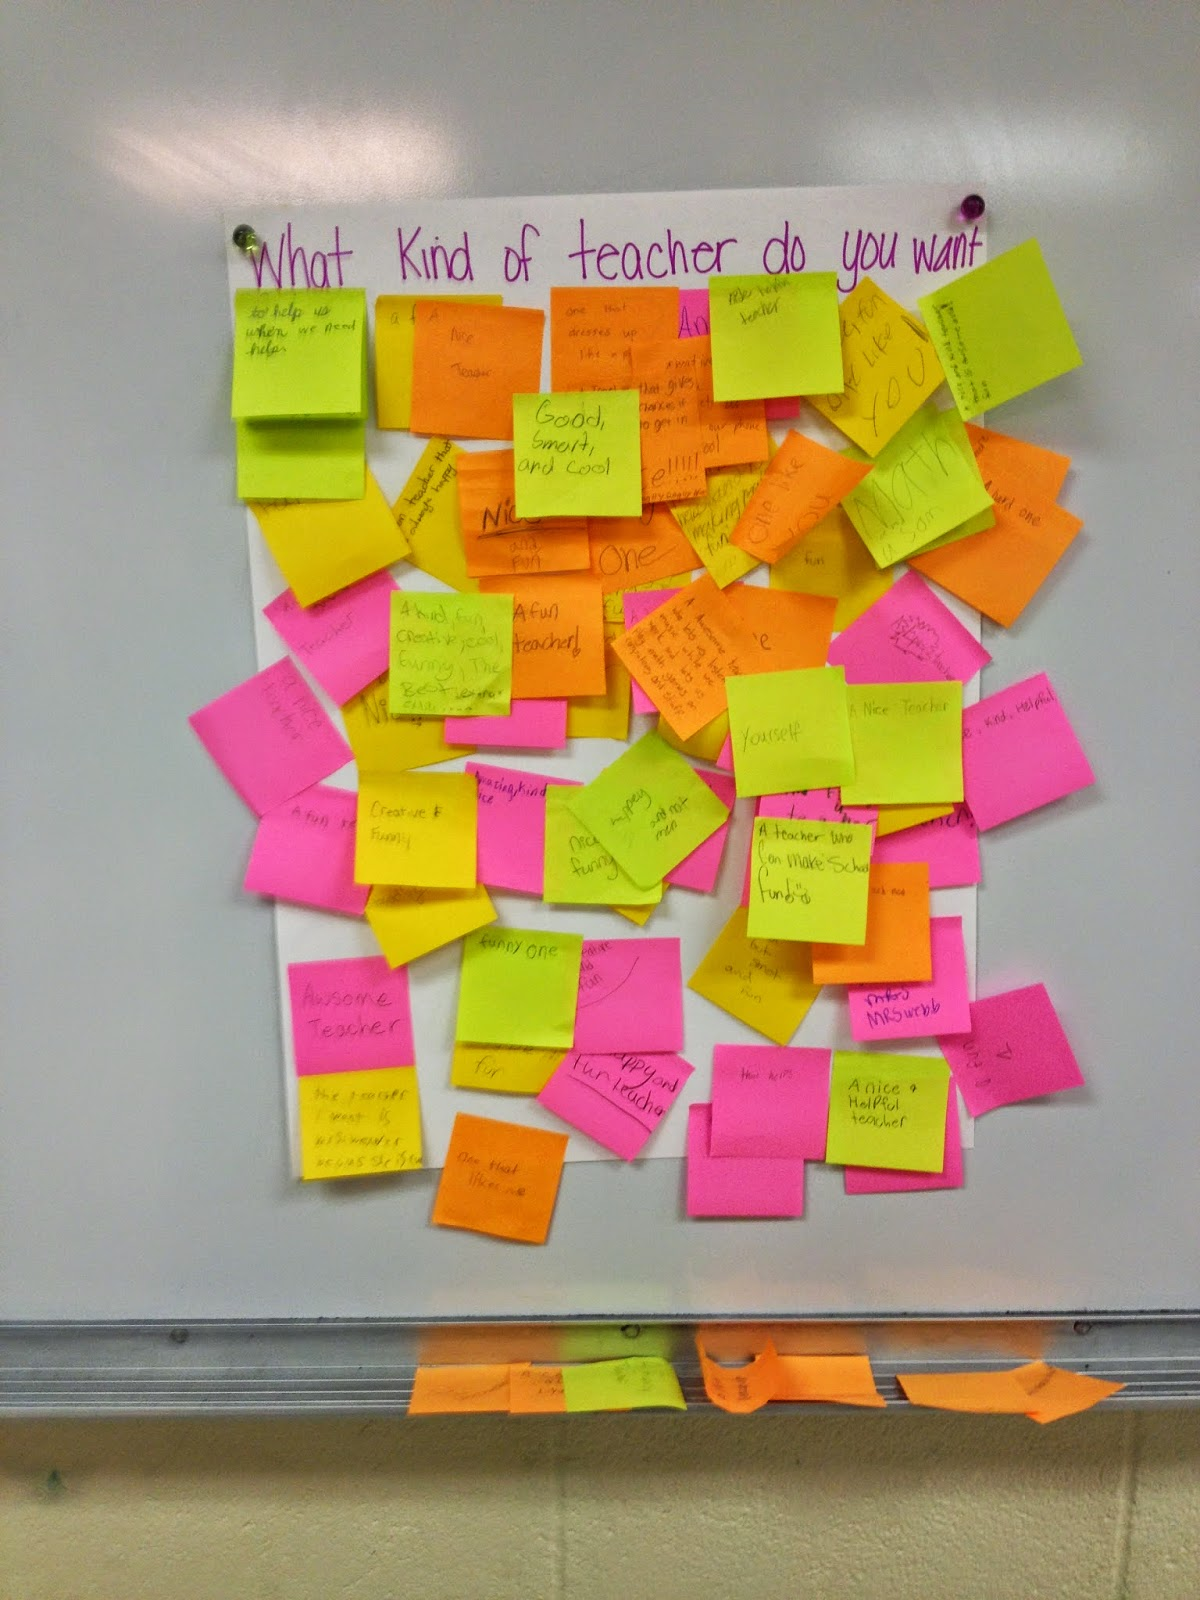 How do you answer questions about why you want to be a teacher?